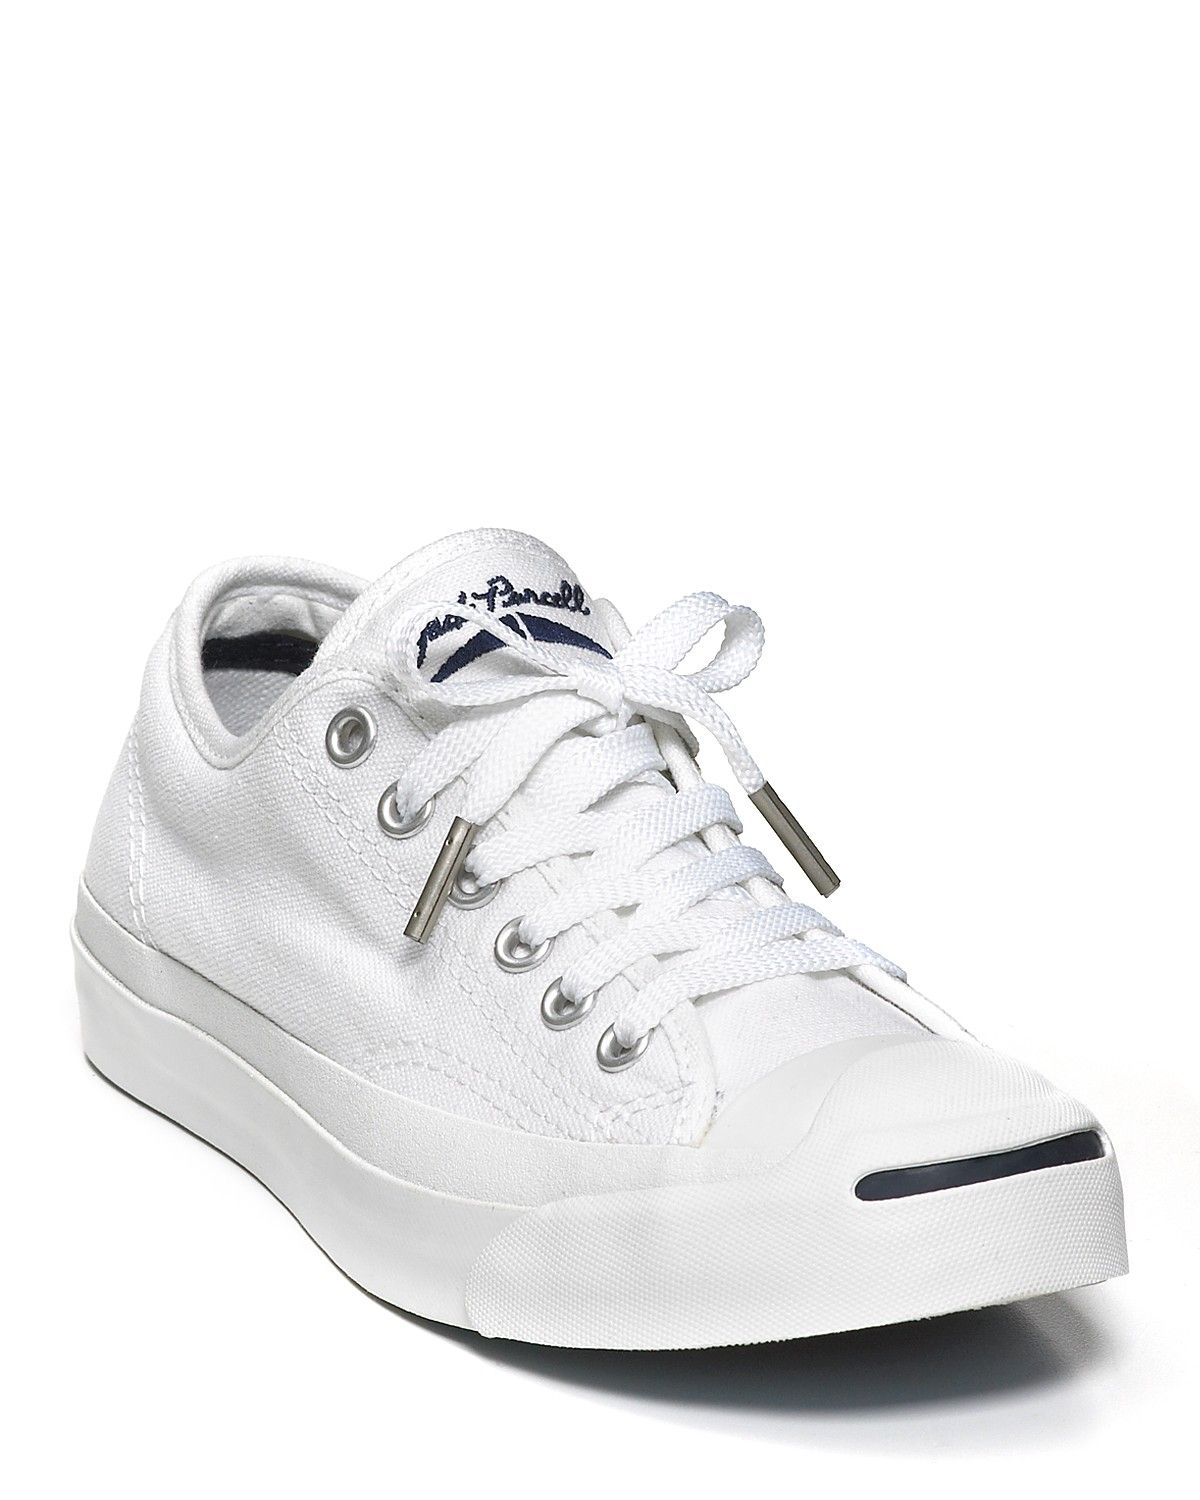 fcecad9f691a Converse Jack Purcell White Core Sneakers - everyone should have a pair of  these in their closet!